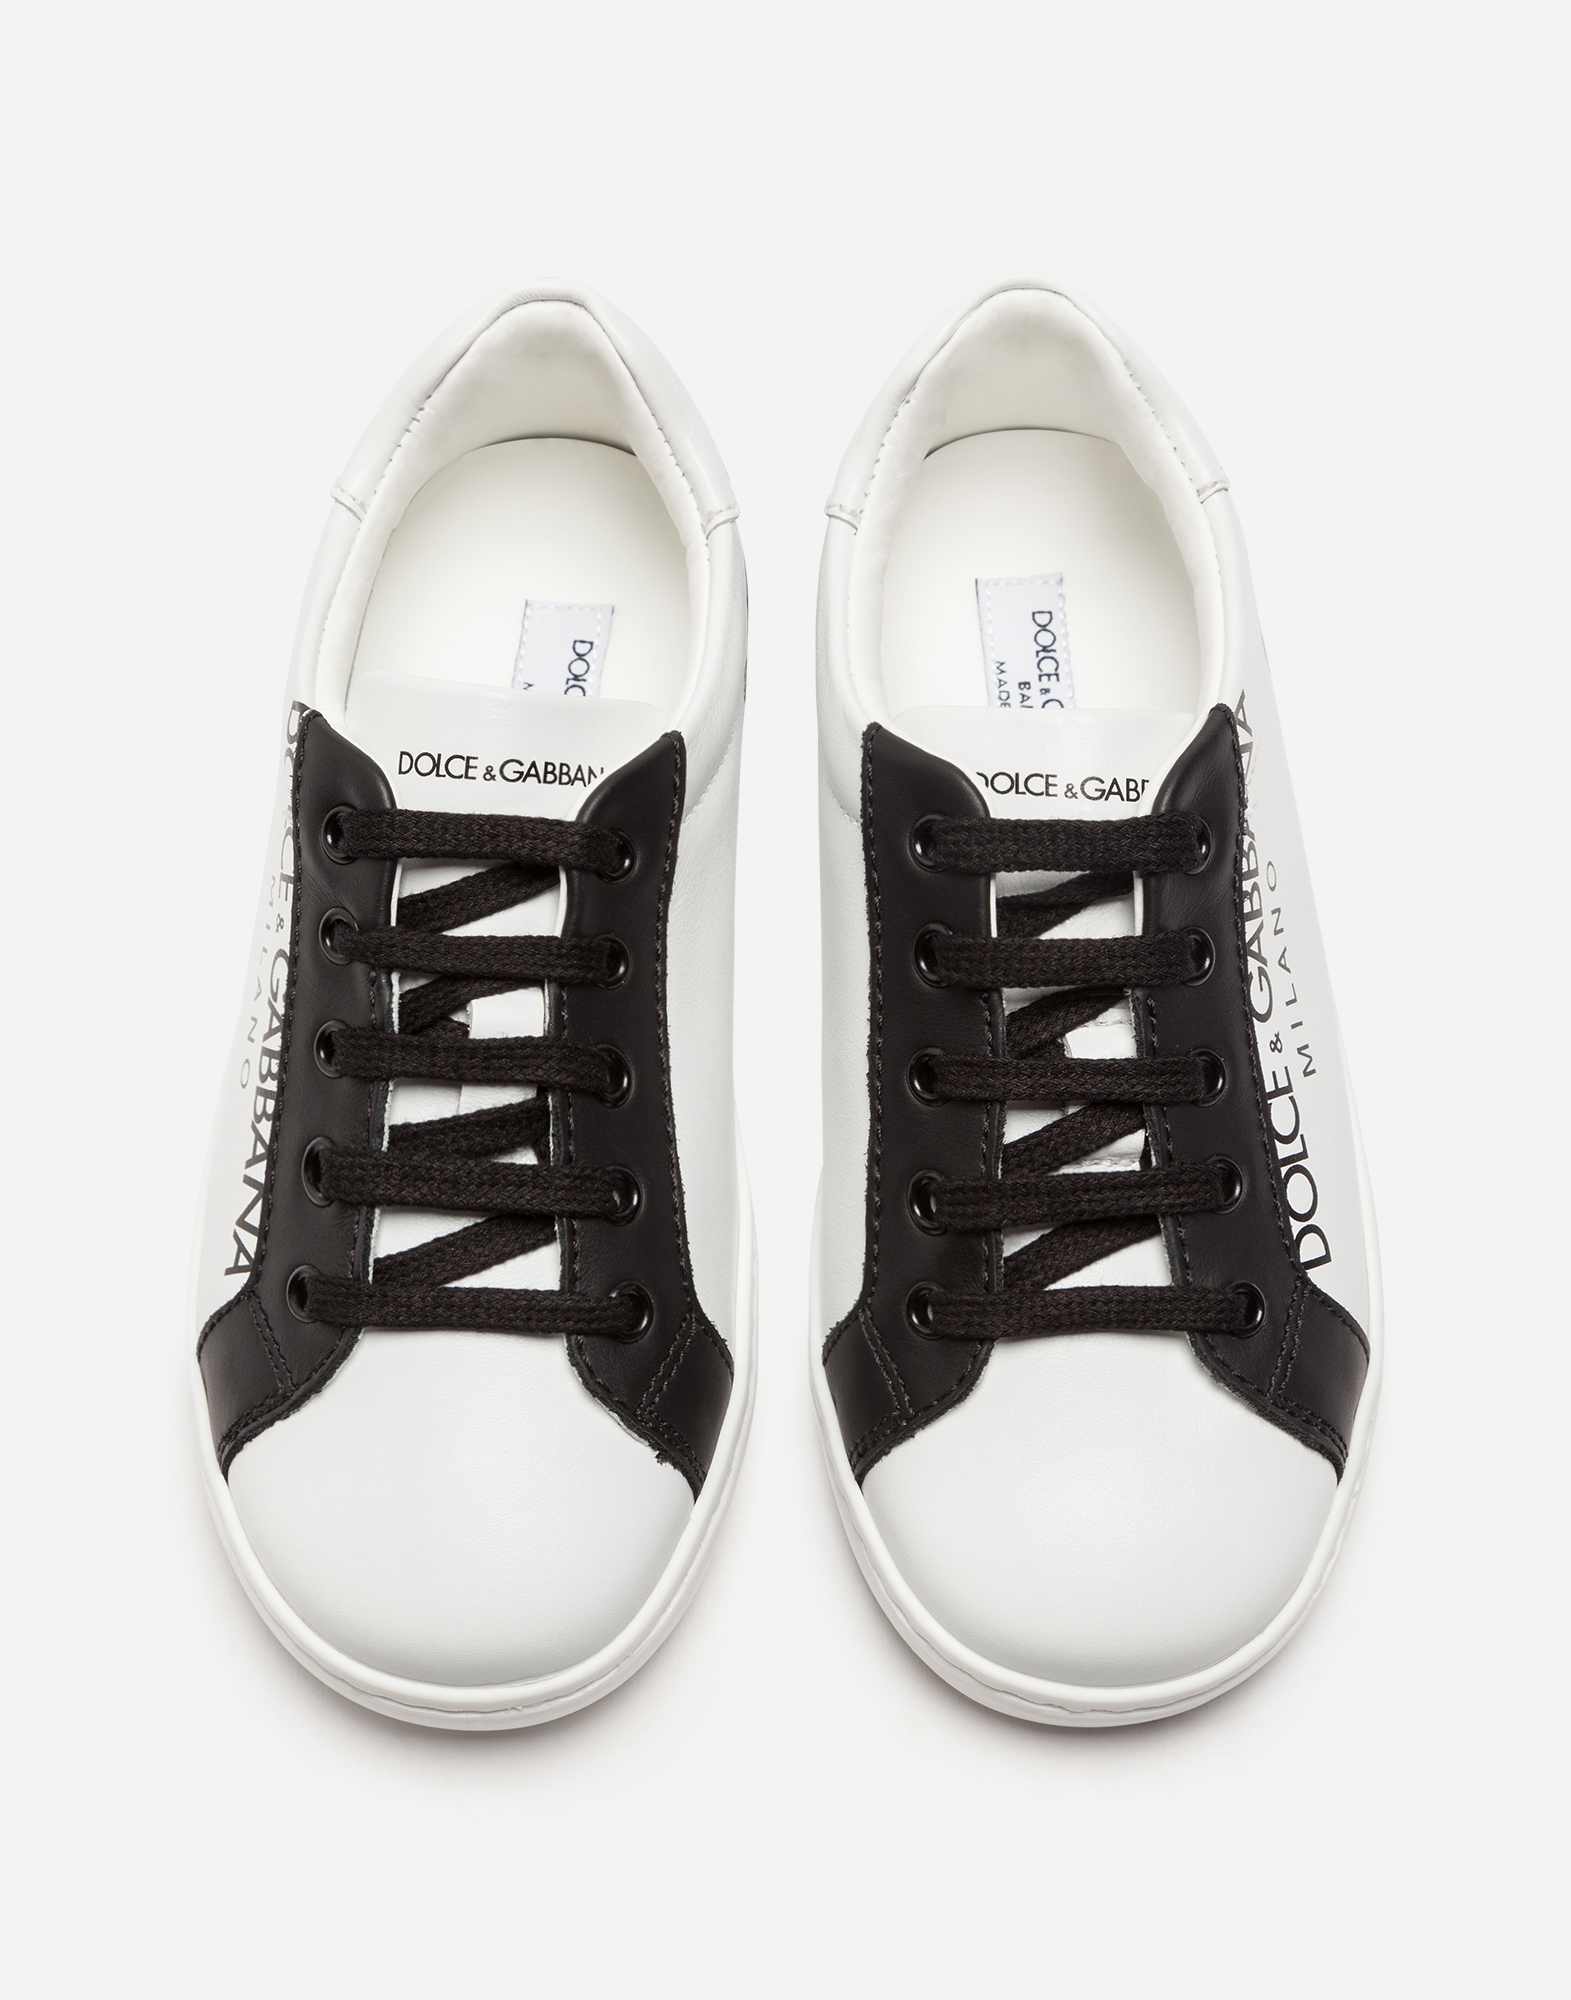 Dolce&Gabbana NAPPA LEATHER SNEAKERS